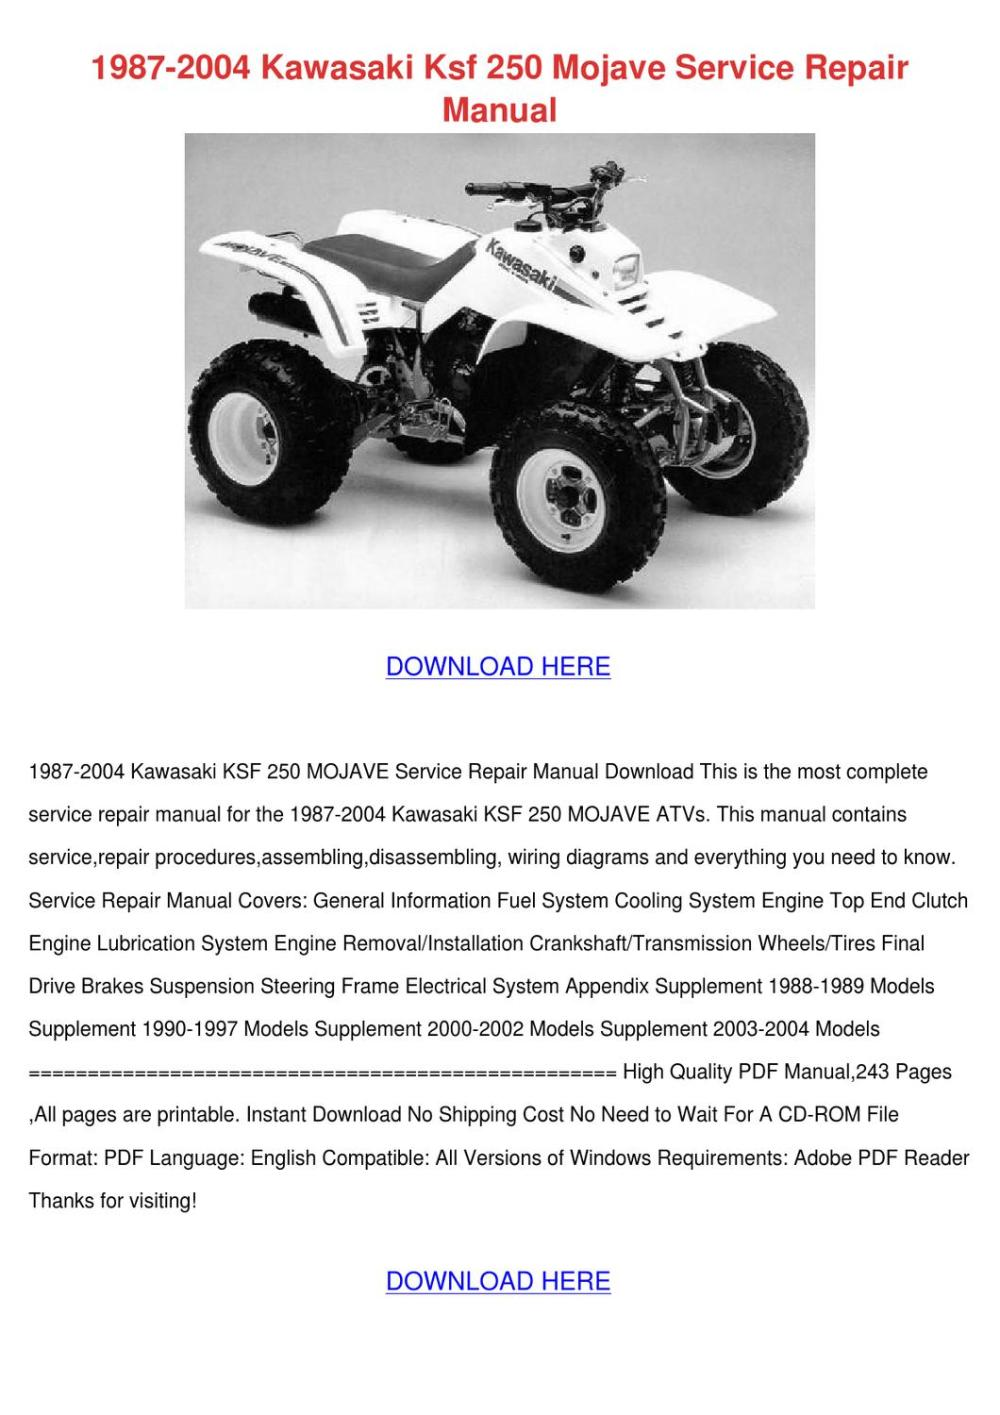 medium resolution of kawasaki mojave ksf wiring diagram kawasaki 110 atv wiring 1997 kawasaki mojave 250 wiring diagram 2001 kawasaki mojave 250 wiring diagram